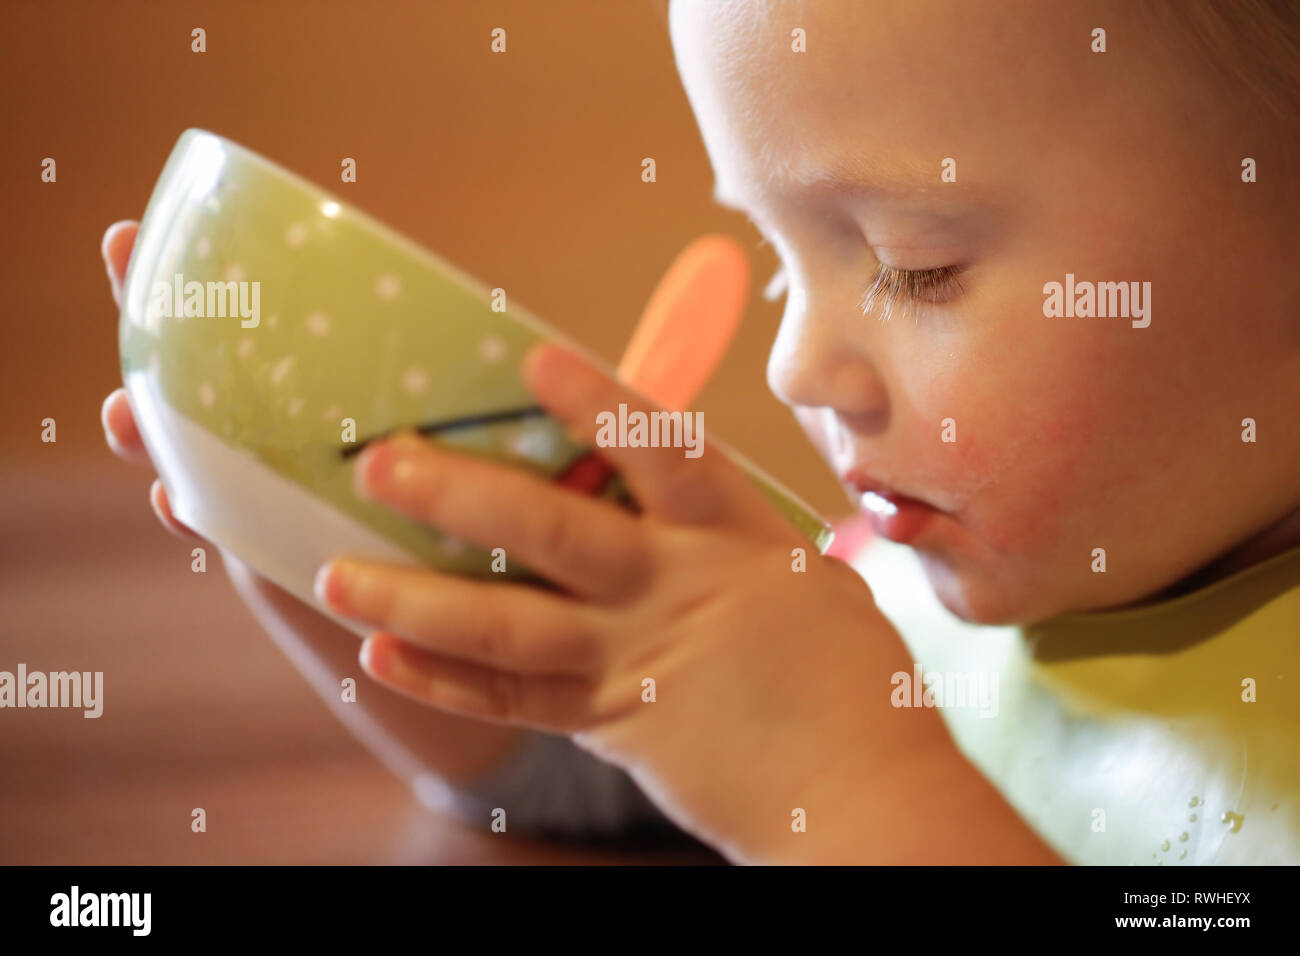 Little boy drinking independently from a bowl, feeding himself, making a mess. Early childhood development, milestones and progress, experience-based  - Stock Image